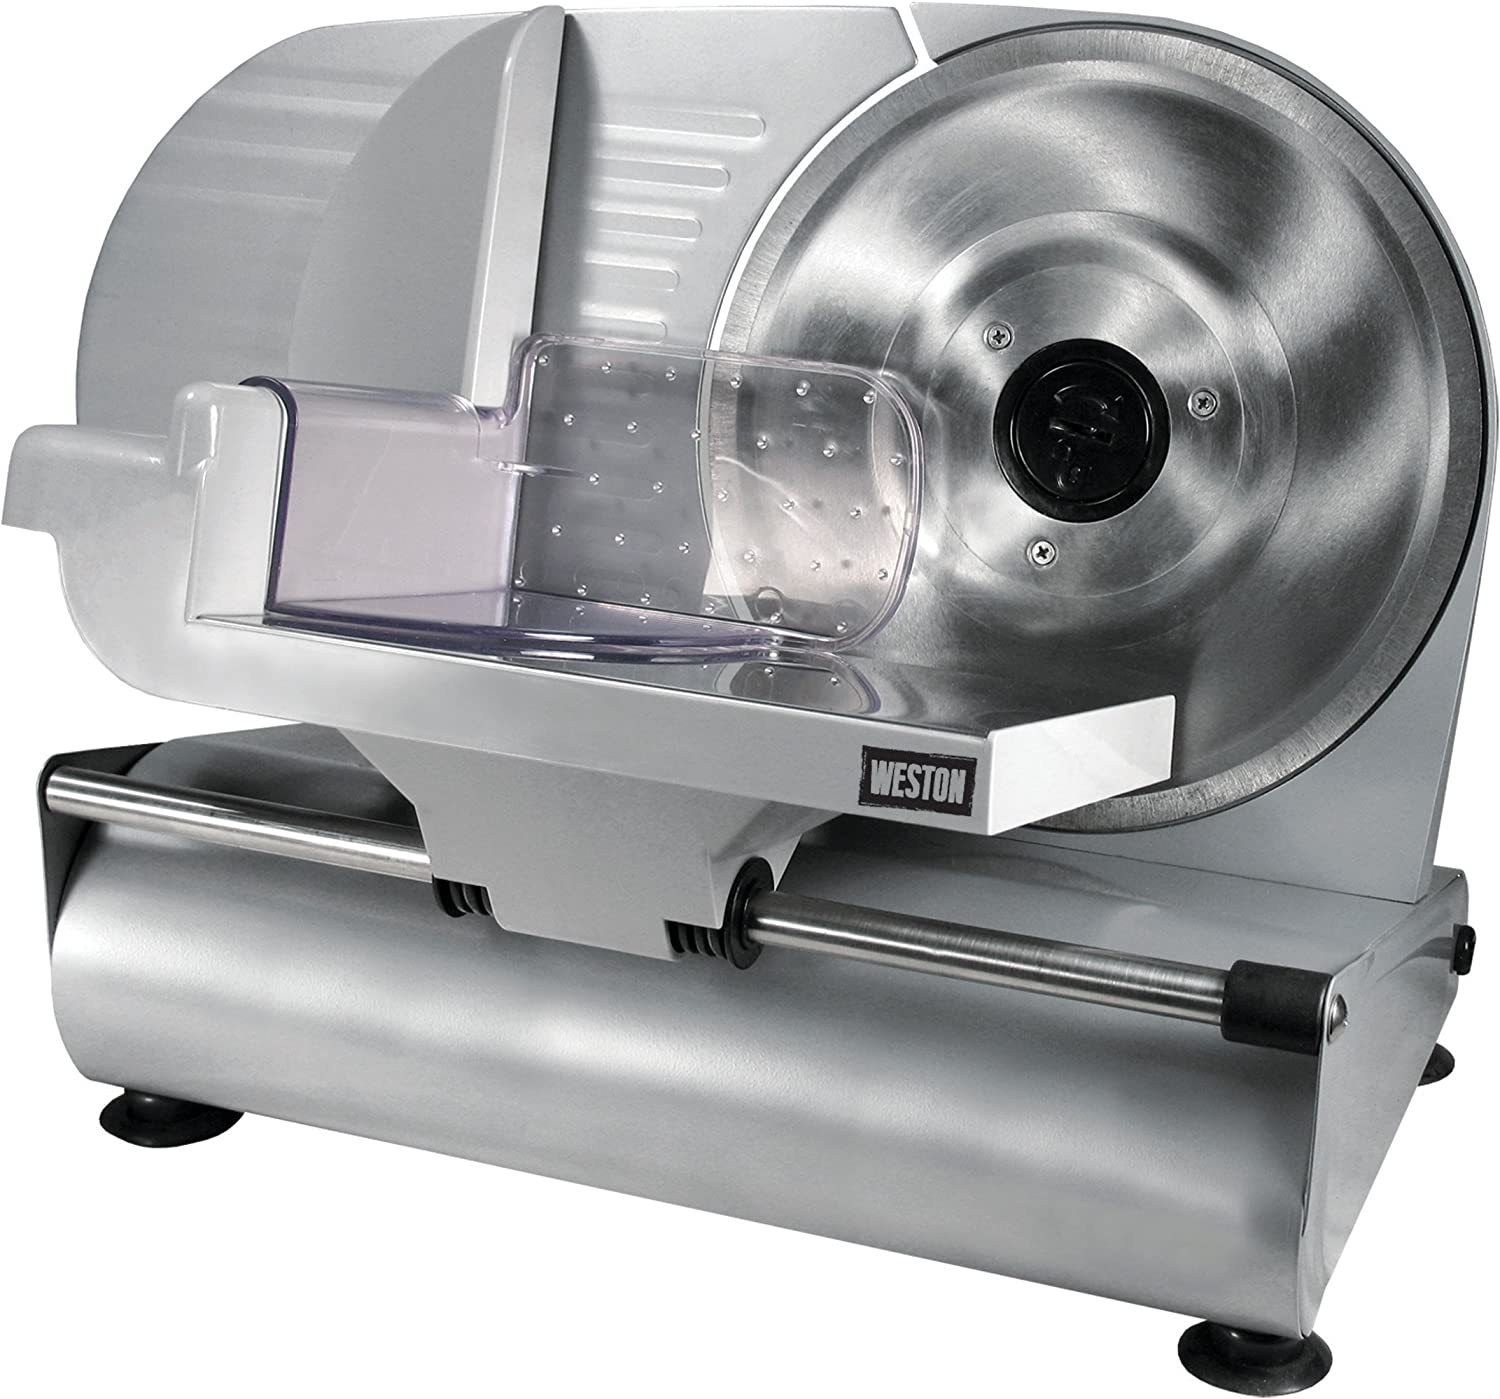 "Weston 61-0901-W Heavy Duty Meat and Food Slicer, 9"", Stainless Steel"